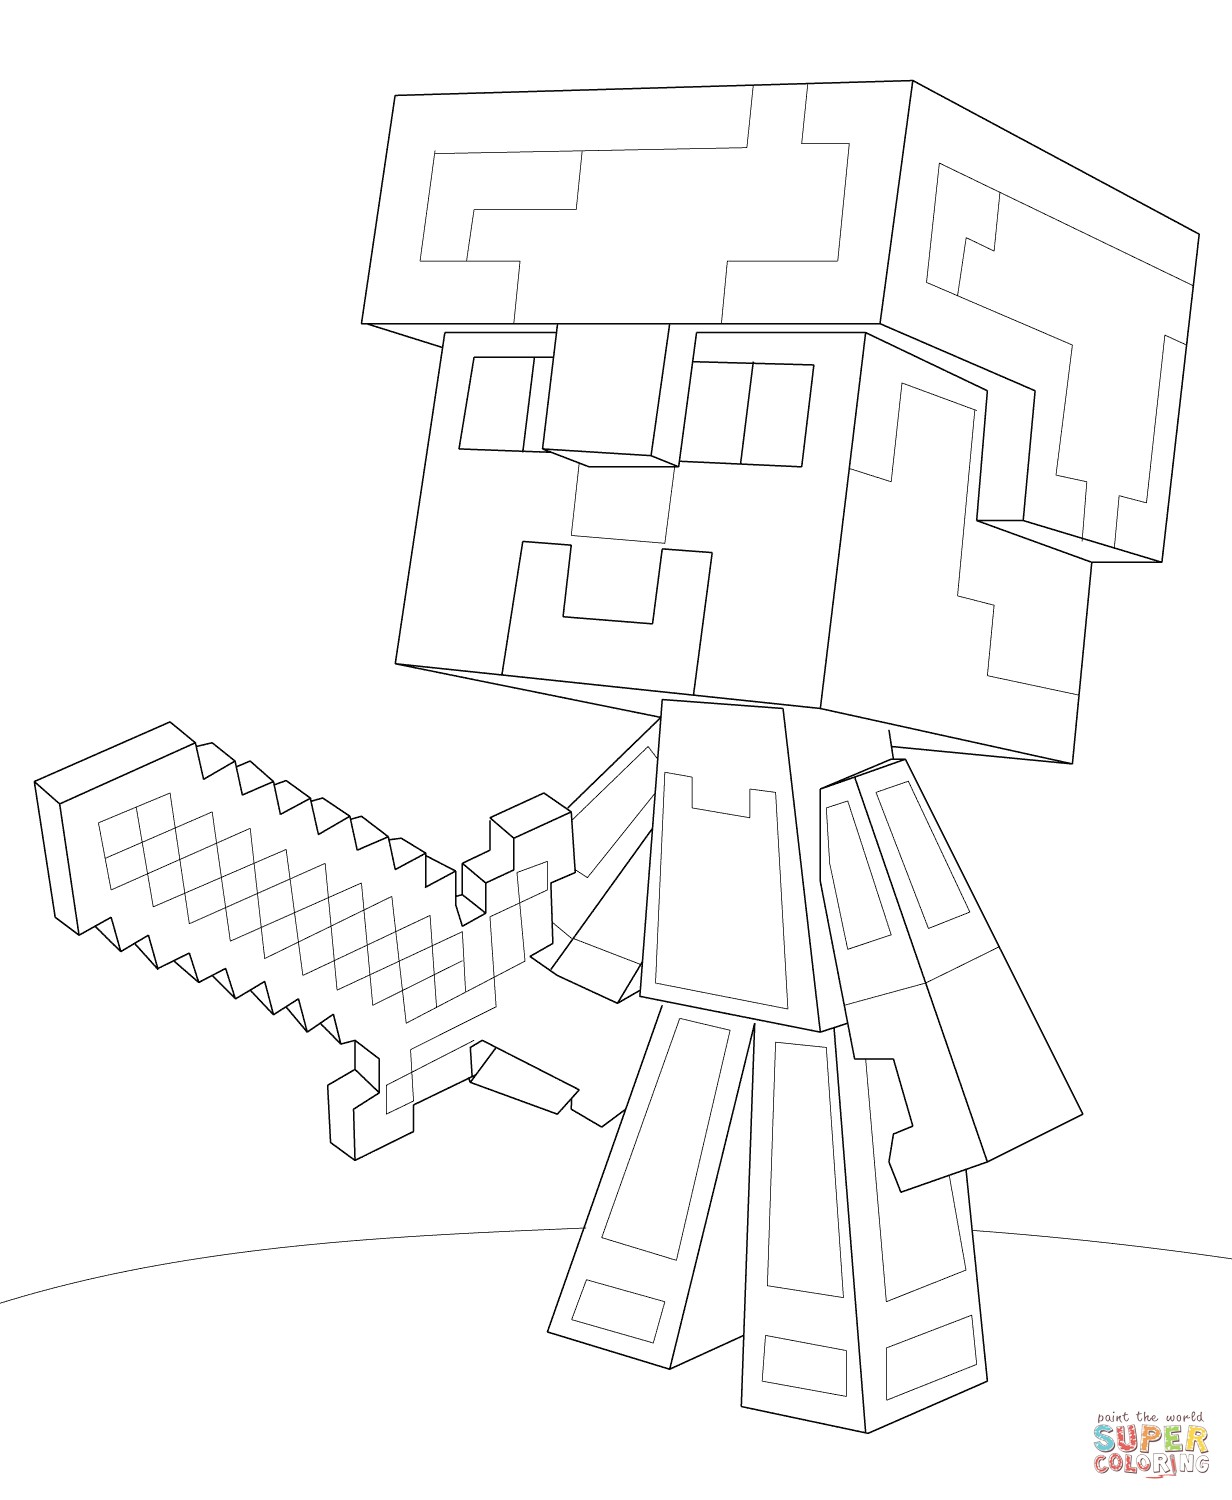 Steve Minecraft Drawing at GetDrawings com | Free for